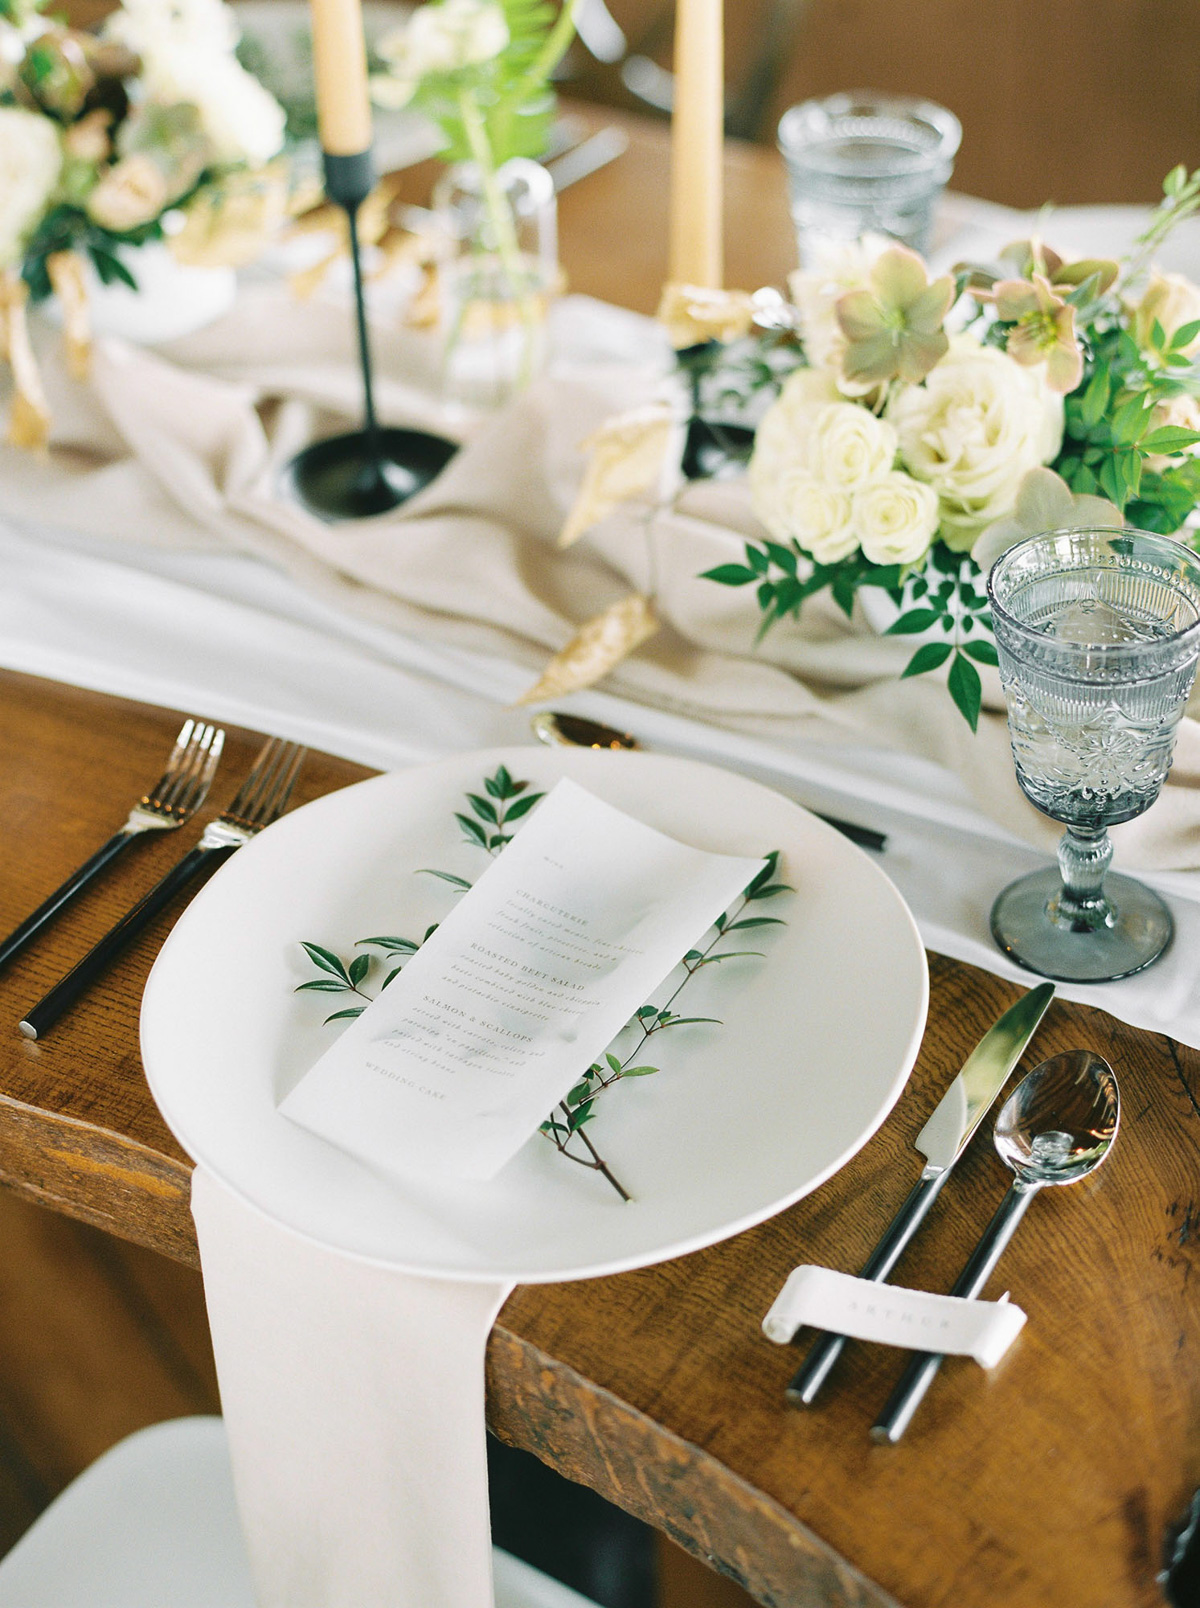 will-reid-photo-vineyard-bride-swish-list-kurtz-orchards-market-niagara-on-the-lake-wedding-editorial-5.jpg